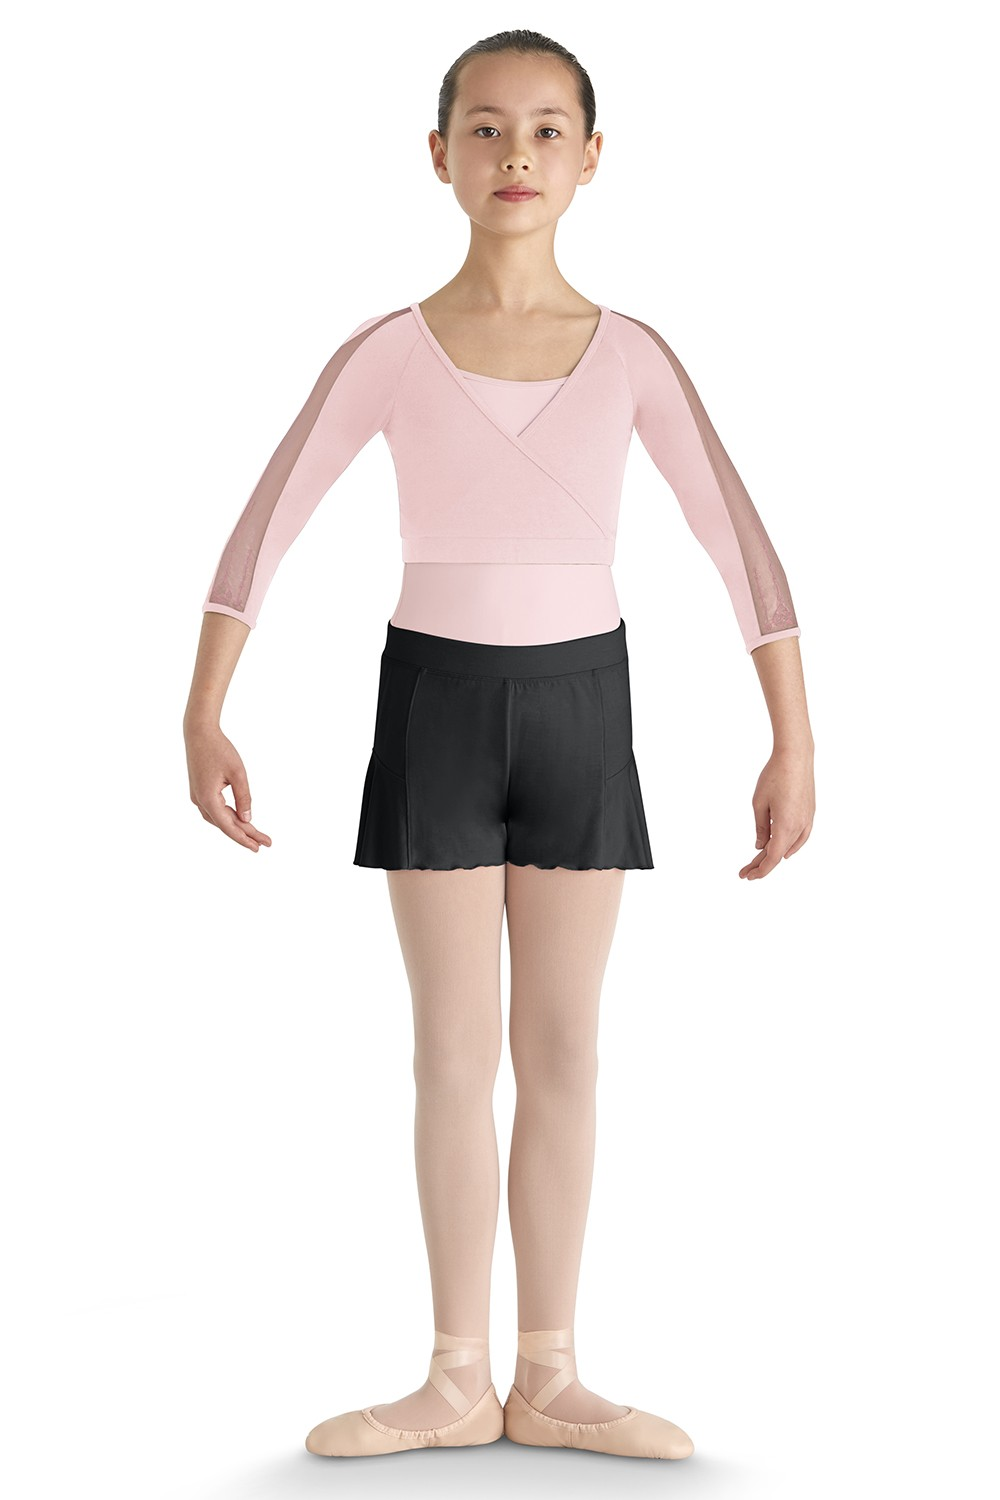 Chayenne Children's Dance Tops